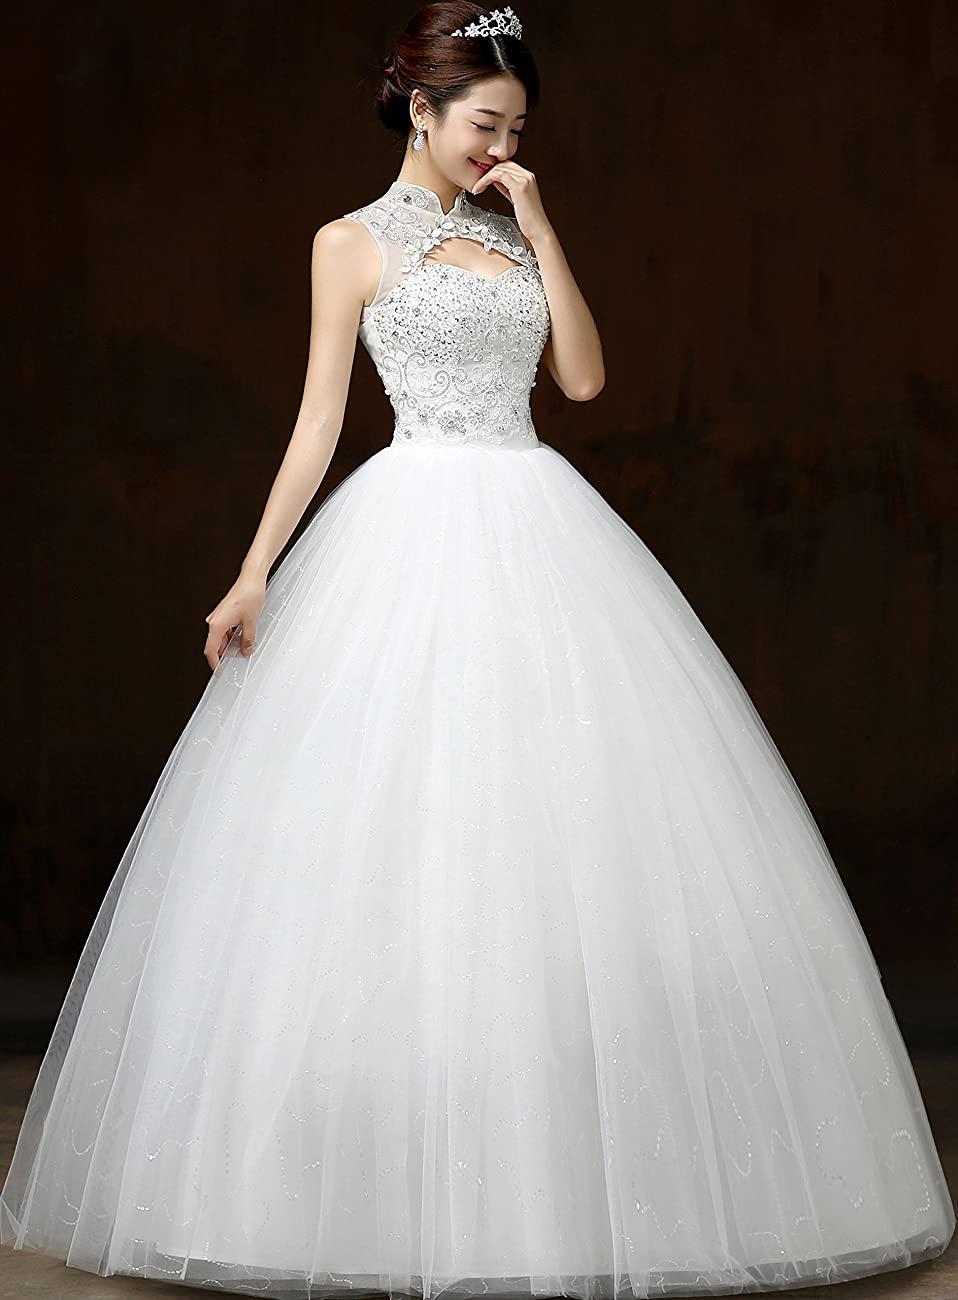 Clover Bridal Vintage High Collar Pearl Wedding Dress for Bride White Under 100 6